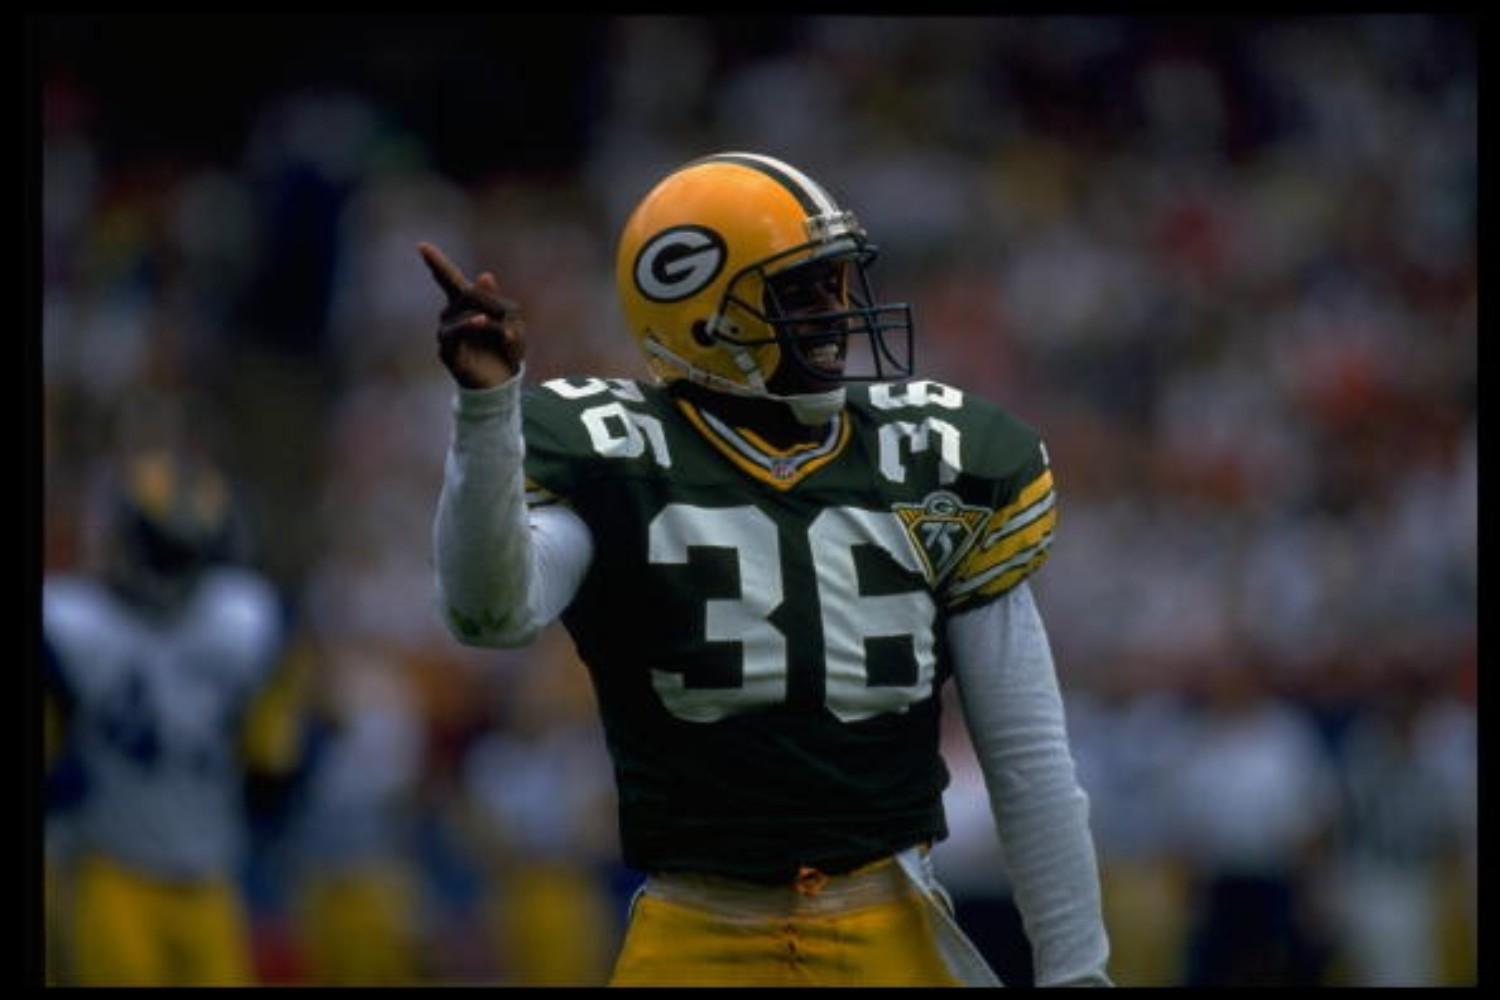 LeRoy Butler had a successful career with the Green Bay Packers